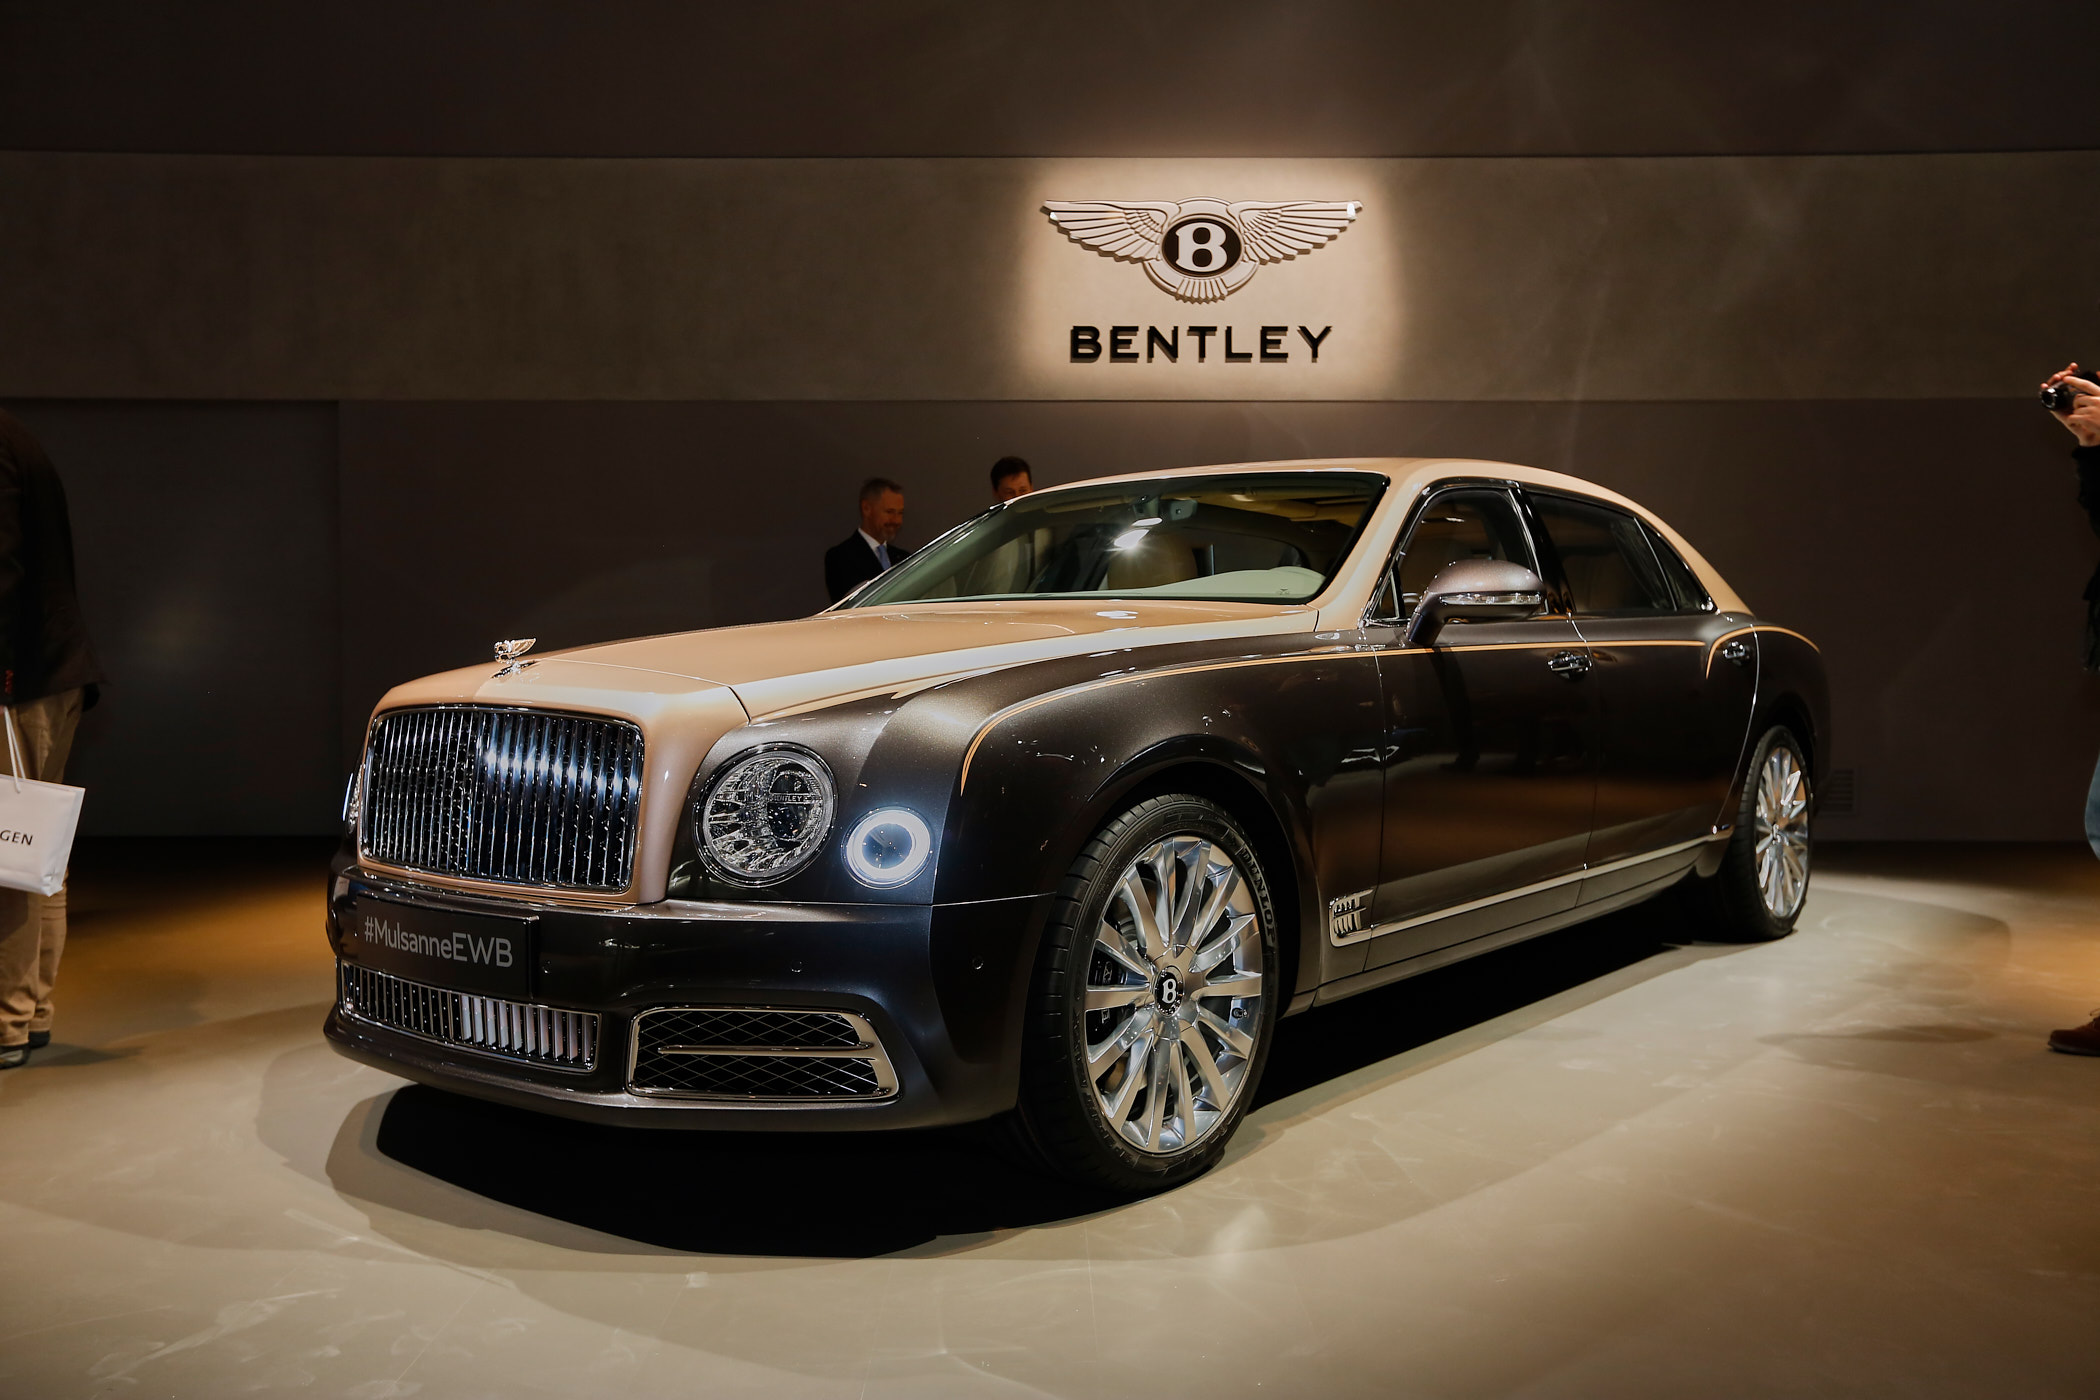 2017 bentley mulsanne preview live photos and video page 2. Black Bedroom Furniture Sets. Home Design Ideas